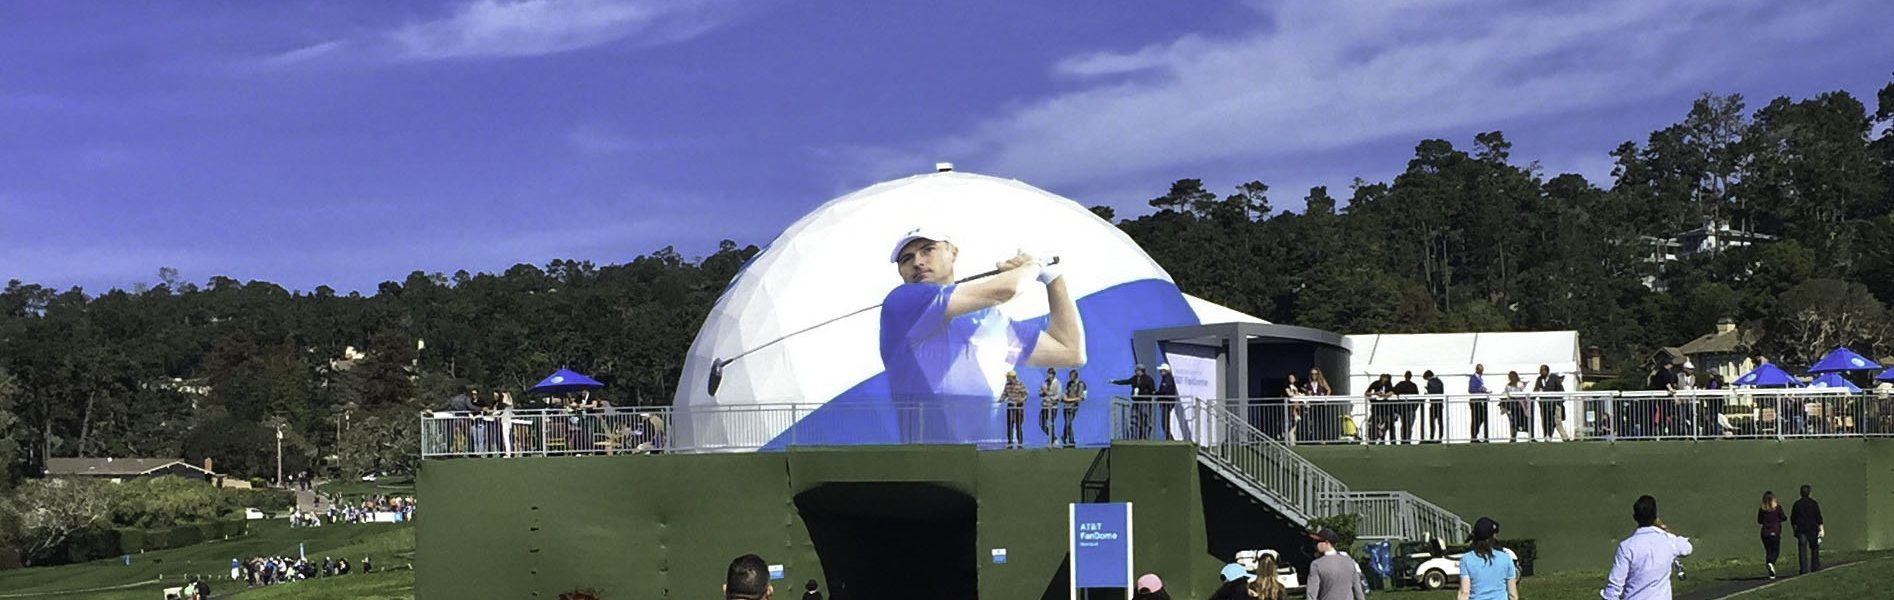 Large Event Tents Harness the Immersive Power of a Geodesic Dome & Harness the Power of Large Event Tents- Pacific Domes